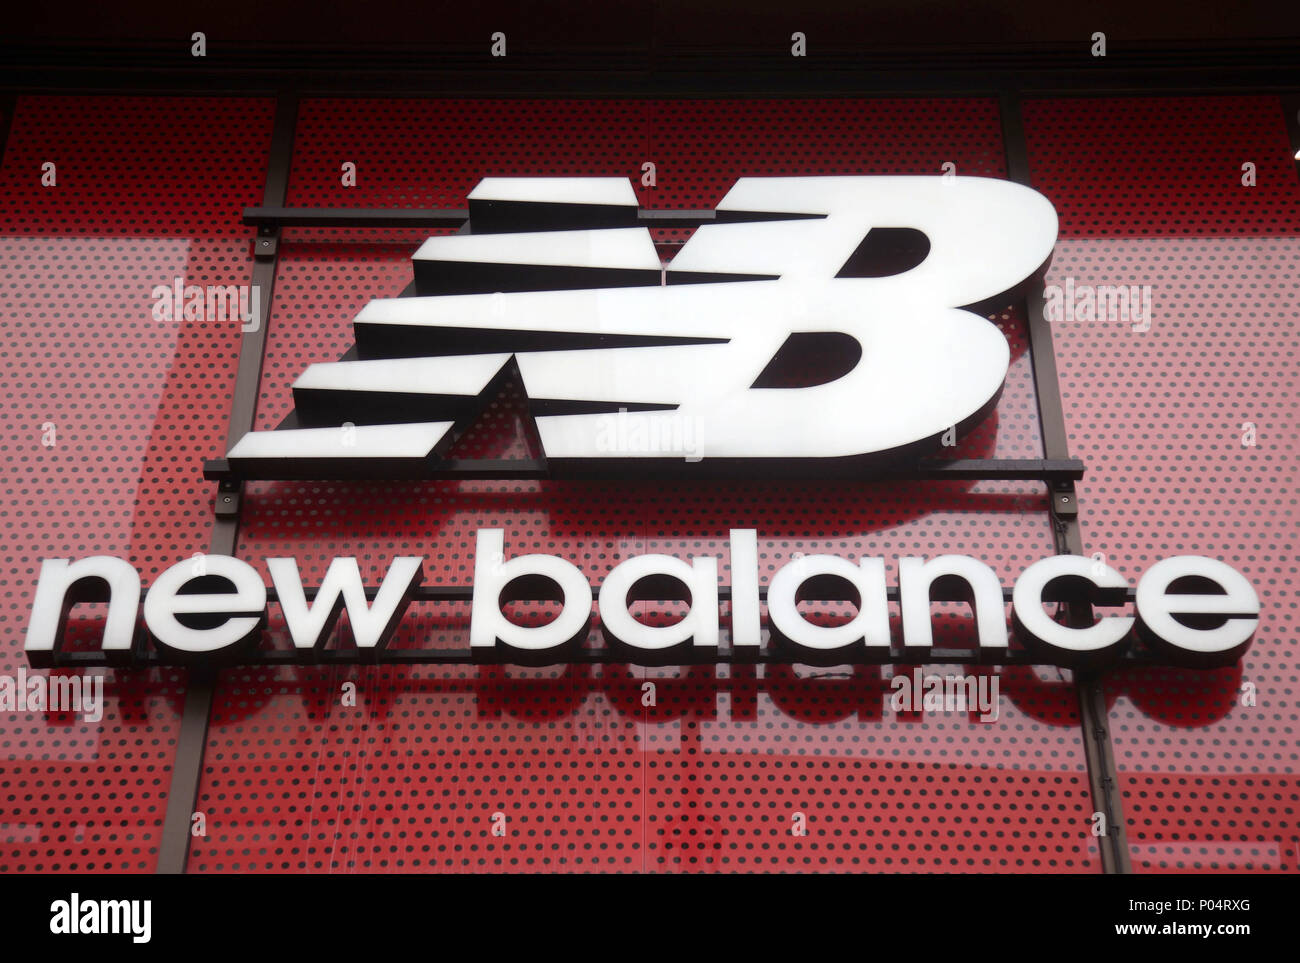 4a04eed544 New Balance Store Stock Photos & New Balance Store Stock Images - Alamy